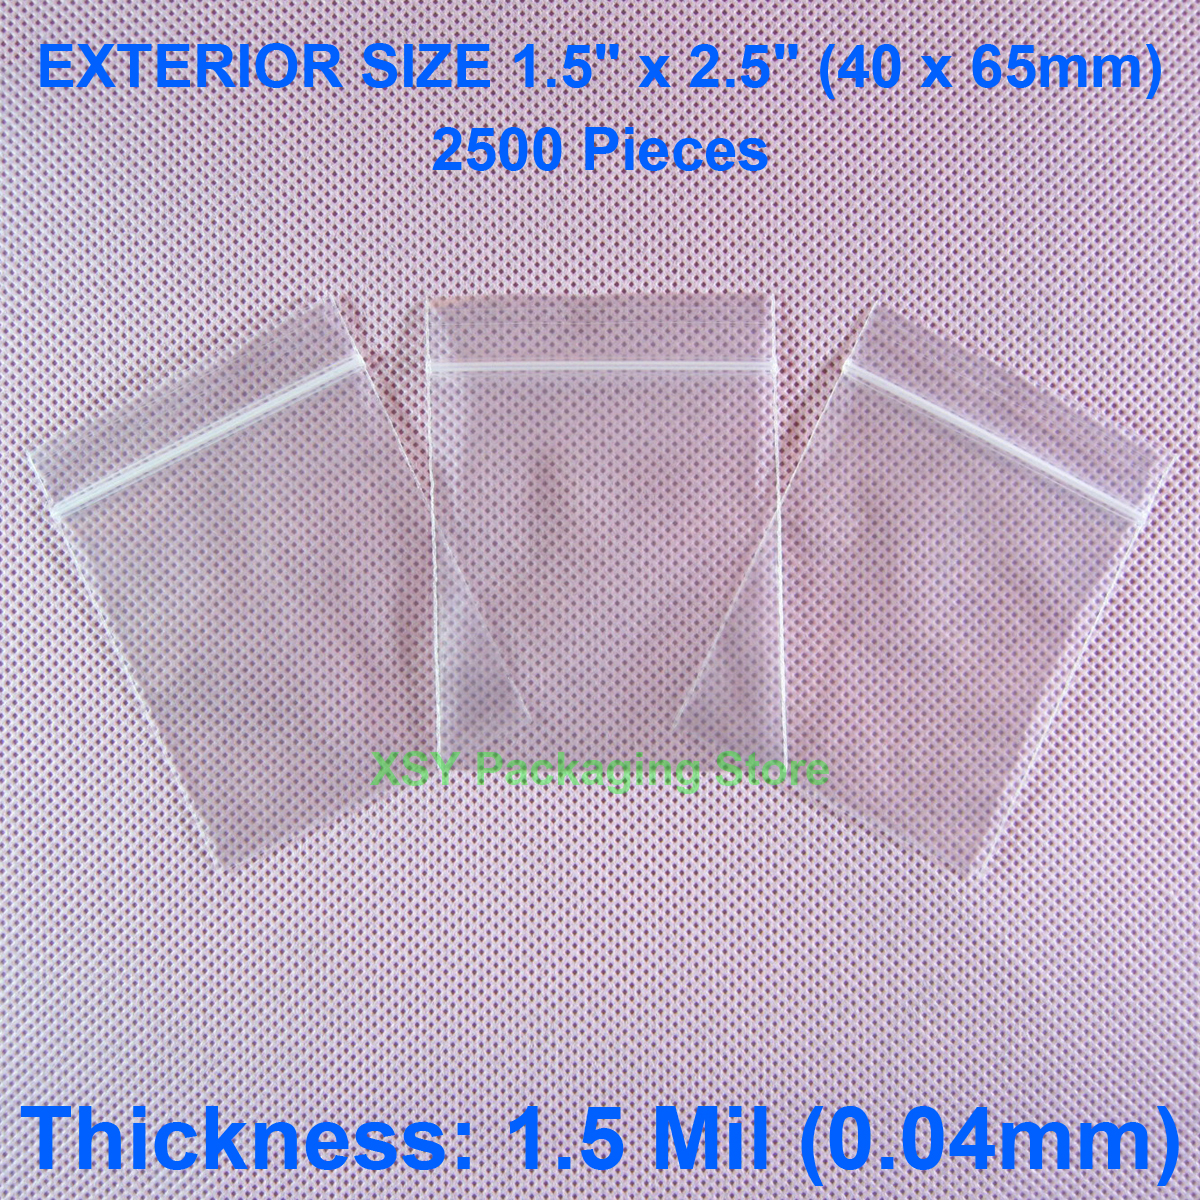 2500 Pieces 1.5 Mil Small Zipper Bags EXTERIOR SIZE 1.5